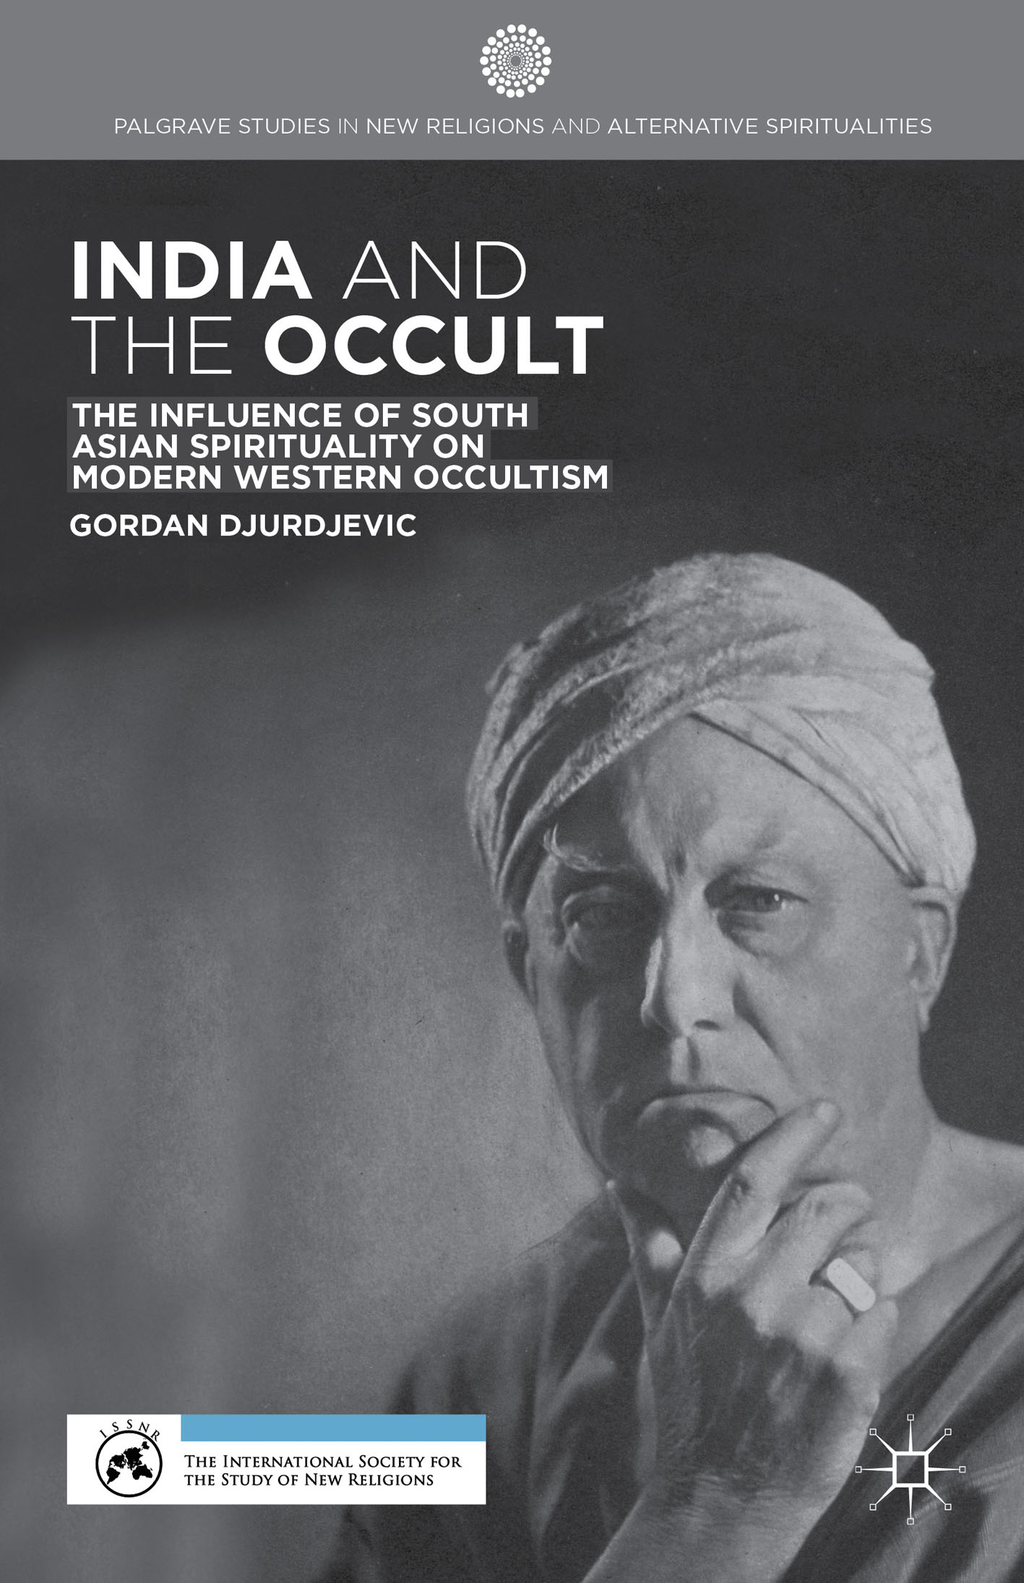 India and the Occult The Influence of South Asian Spirituality on Modern Western Occultism